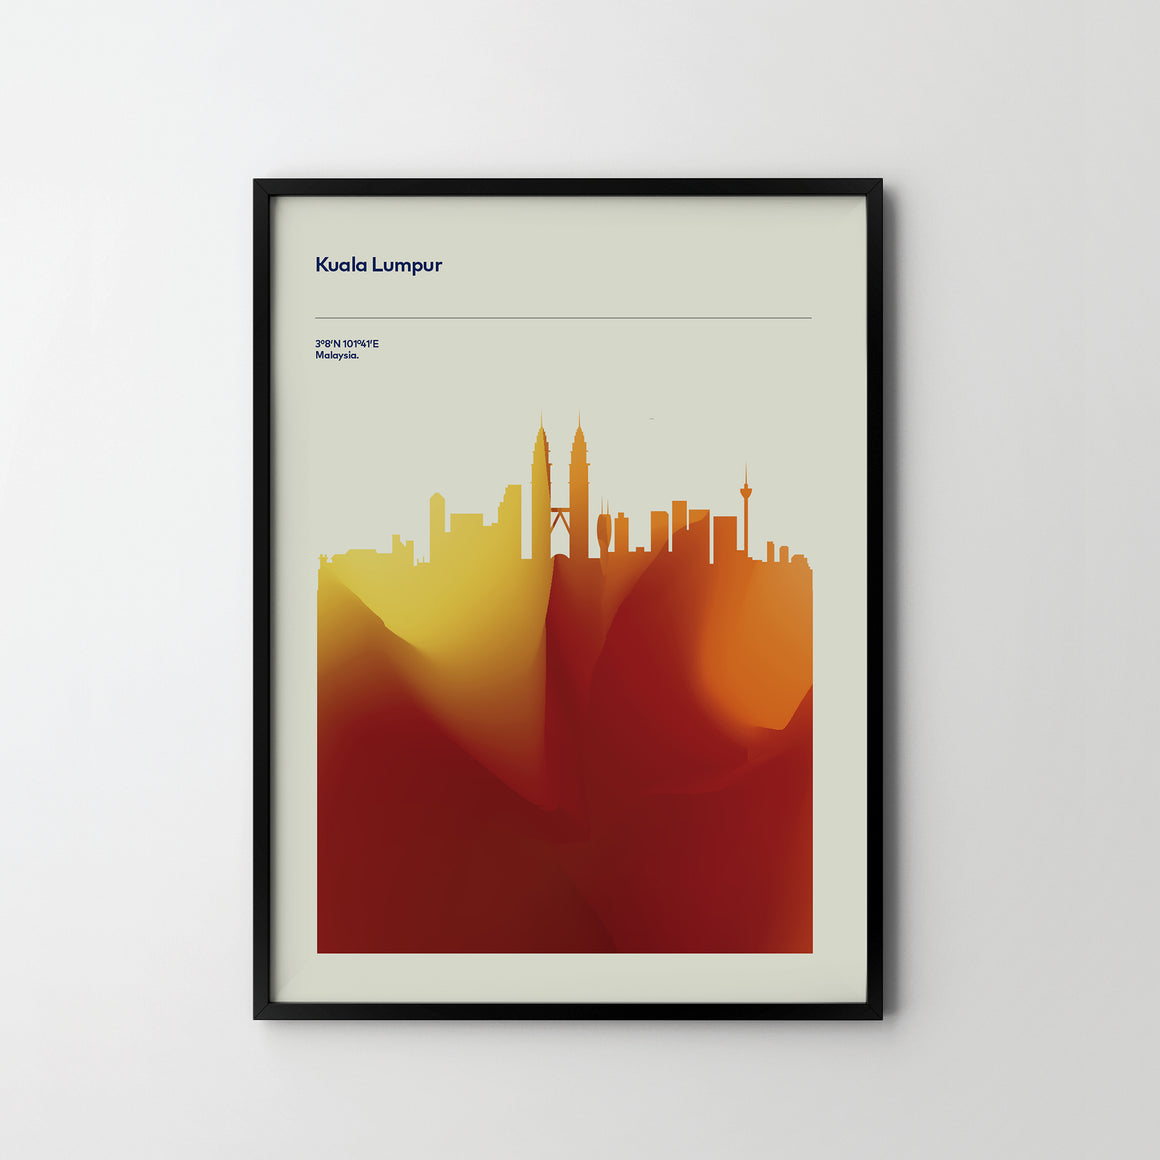 KUALA LUMPUR City Cityscape Skyline Unique Poster Art Print, Places Posters - SOA State of Art